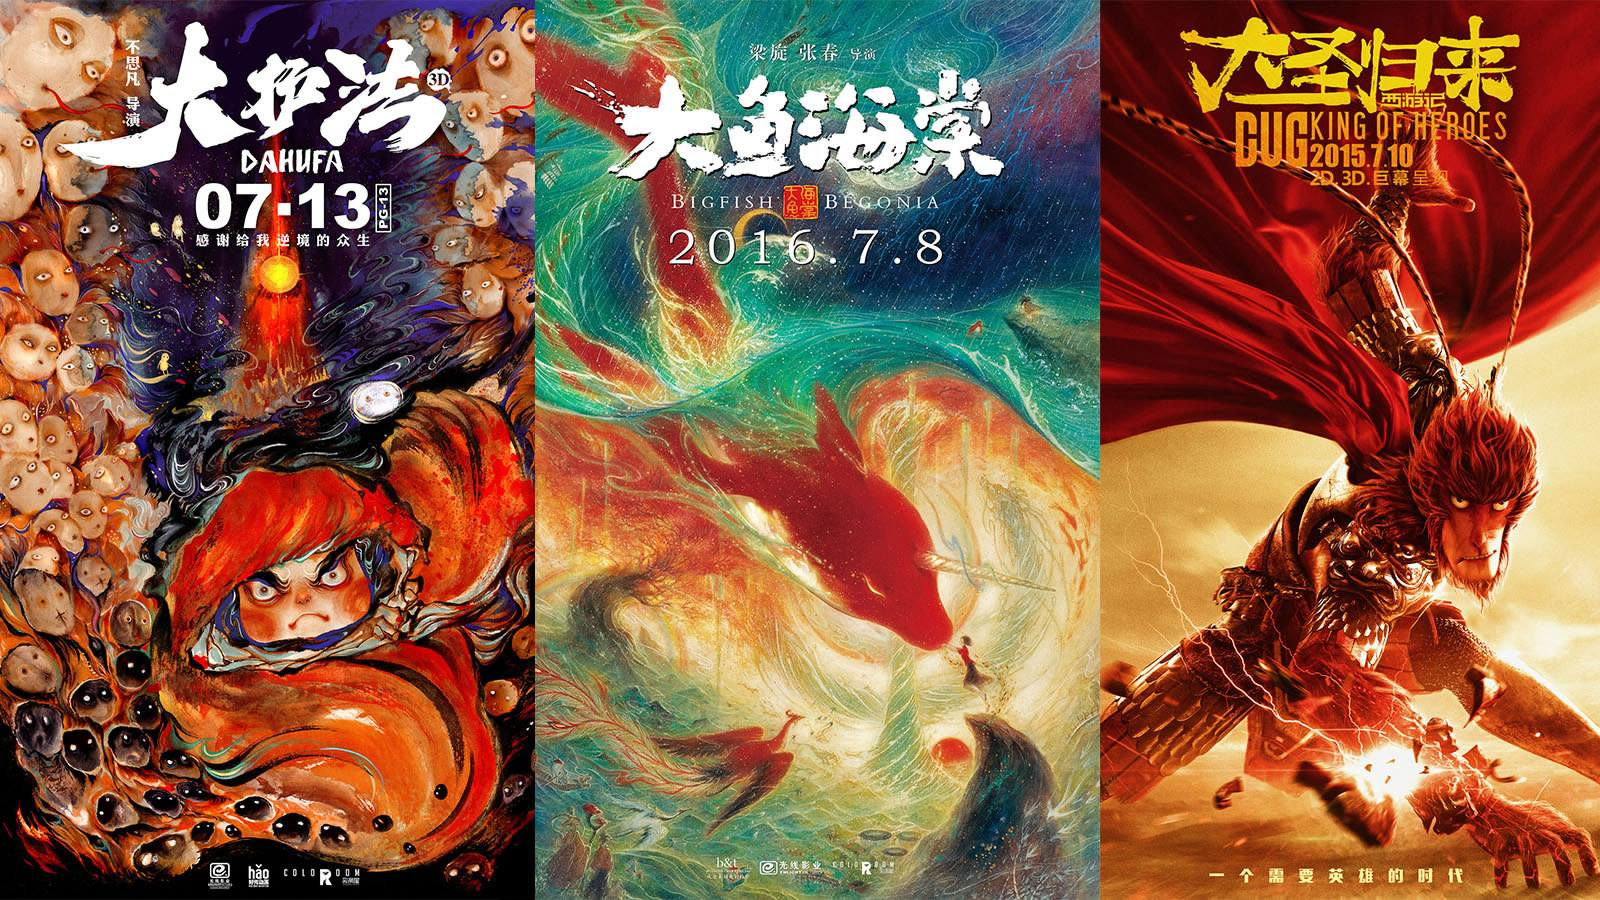 Is it the best time for China's comics and animation industry?